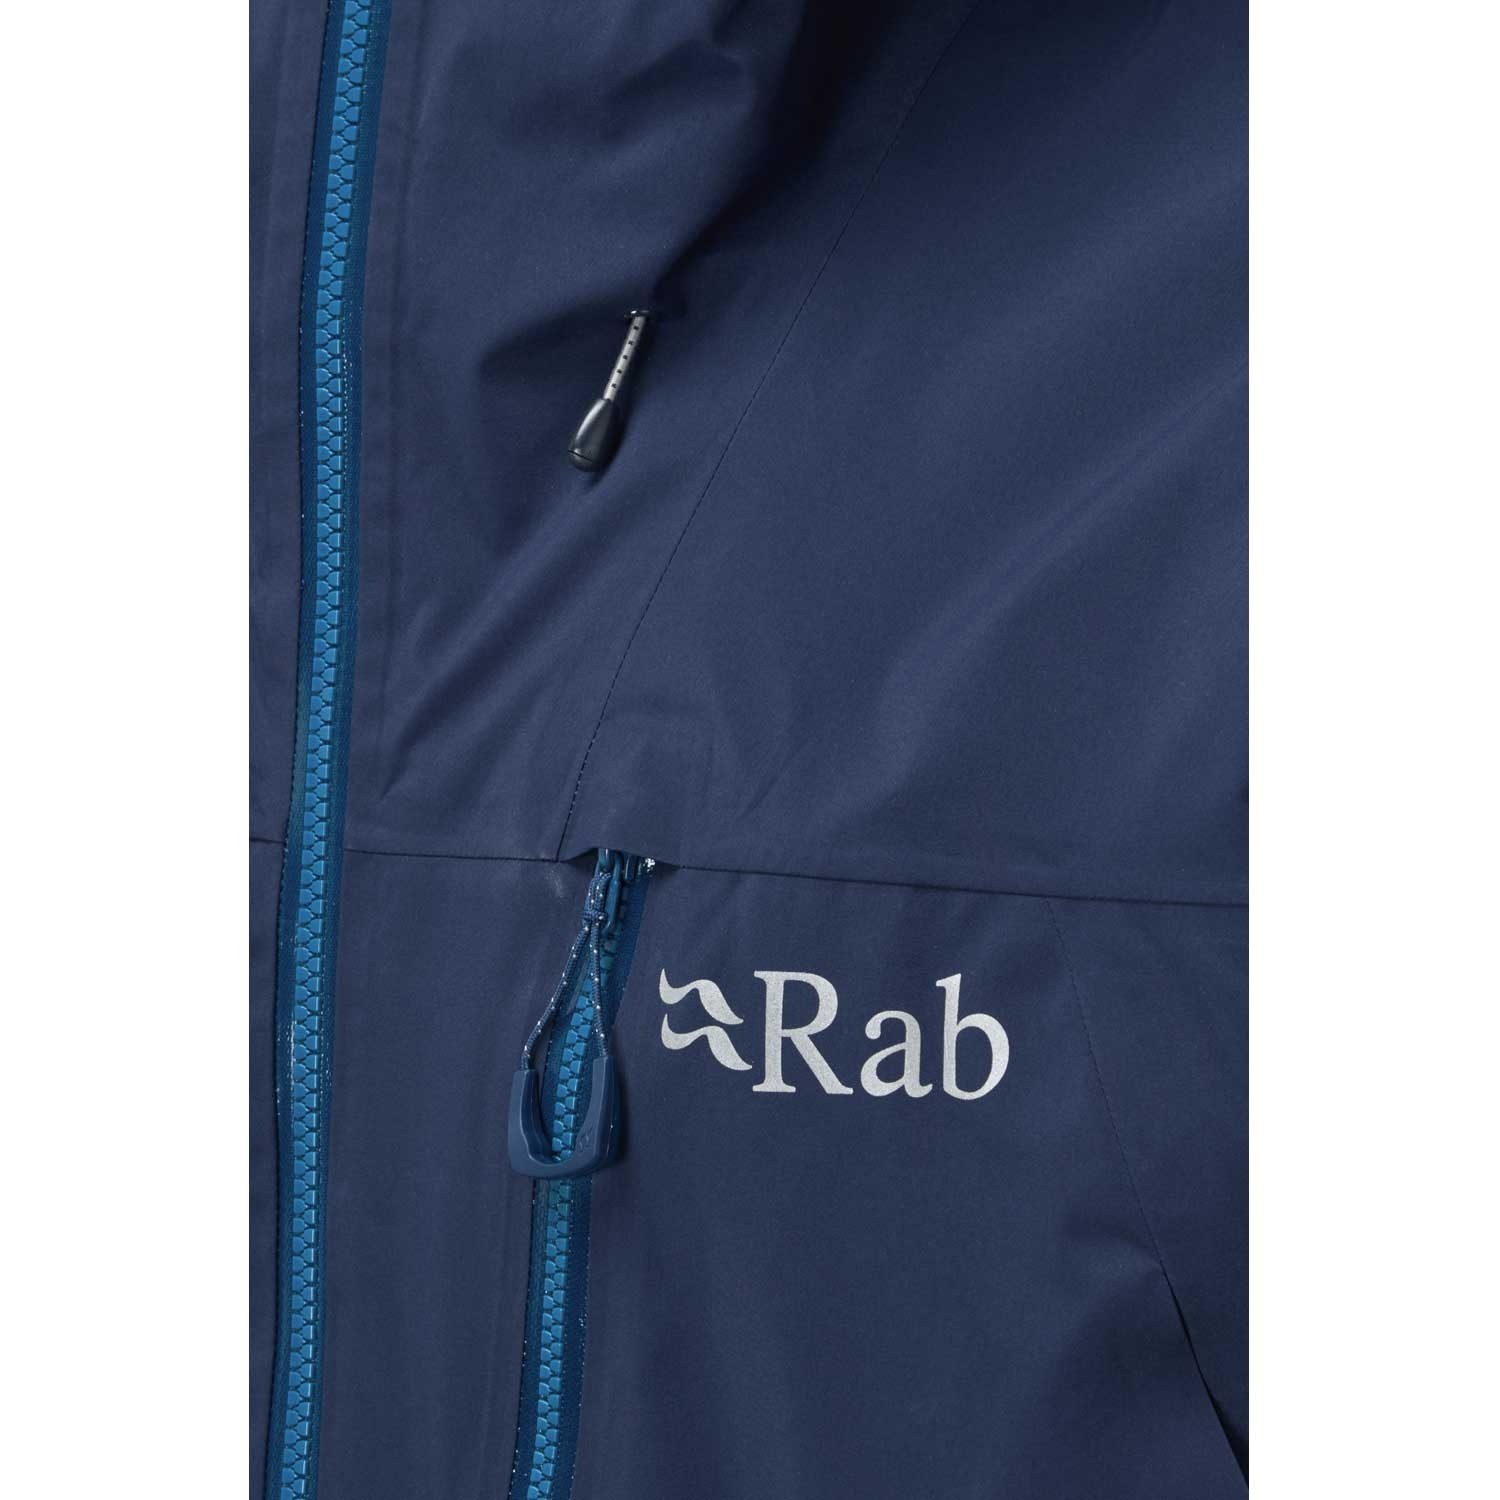 Rab Latok GTX Waterproof Jacket - Men's - Deep Ink